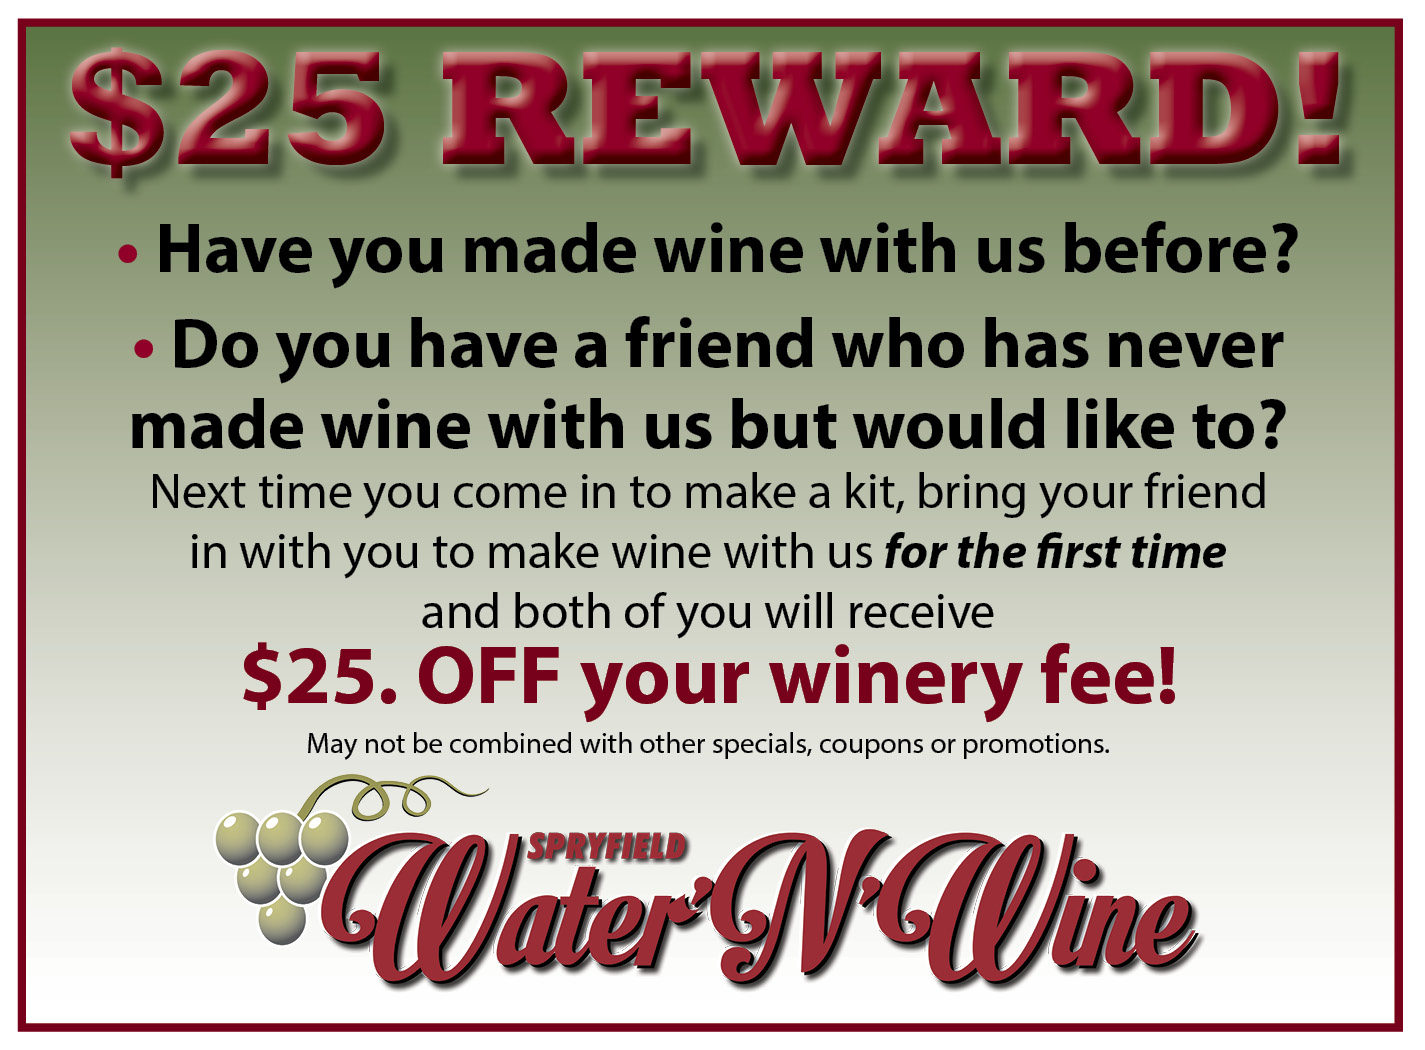 winery fee coupon